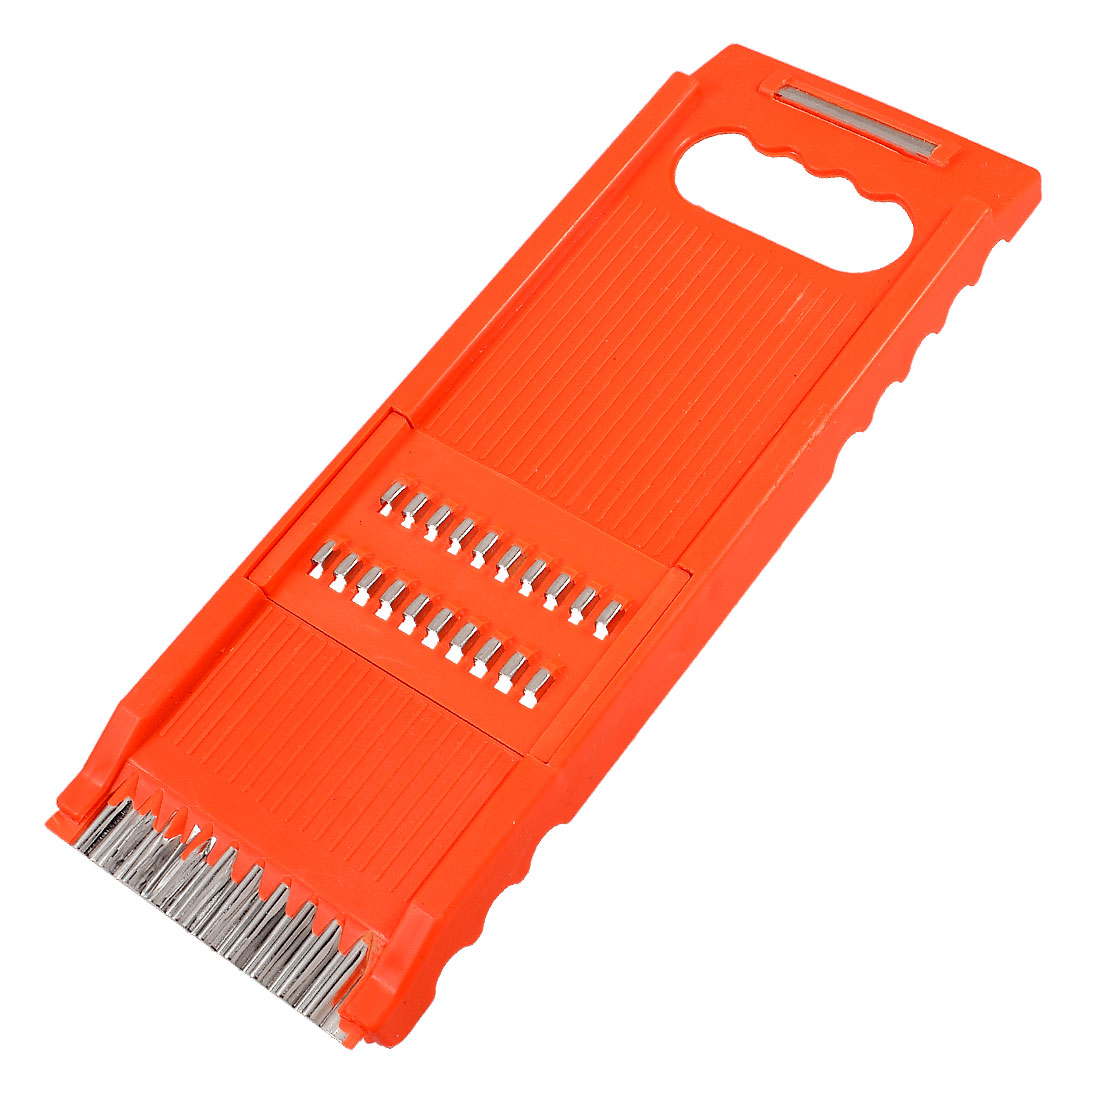 Sharp Metal Scraper Orange Plastic Frame Fruit Vegetable Grater Slicer